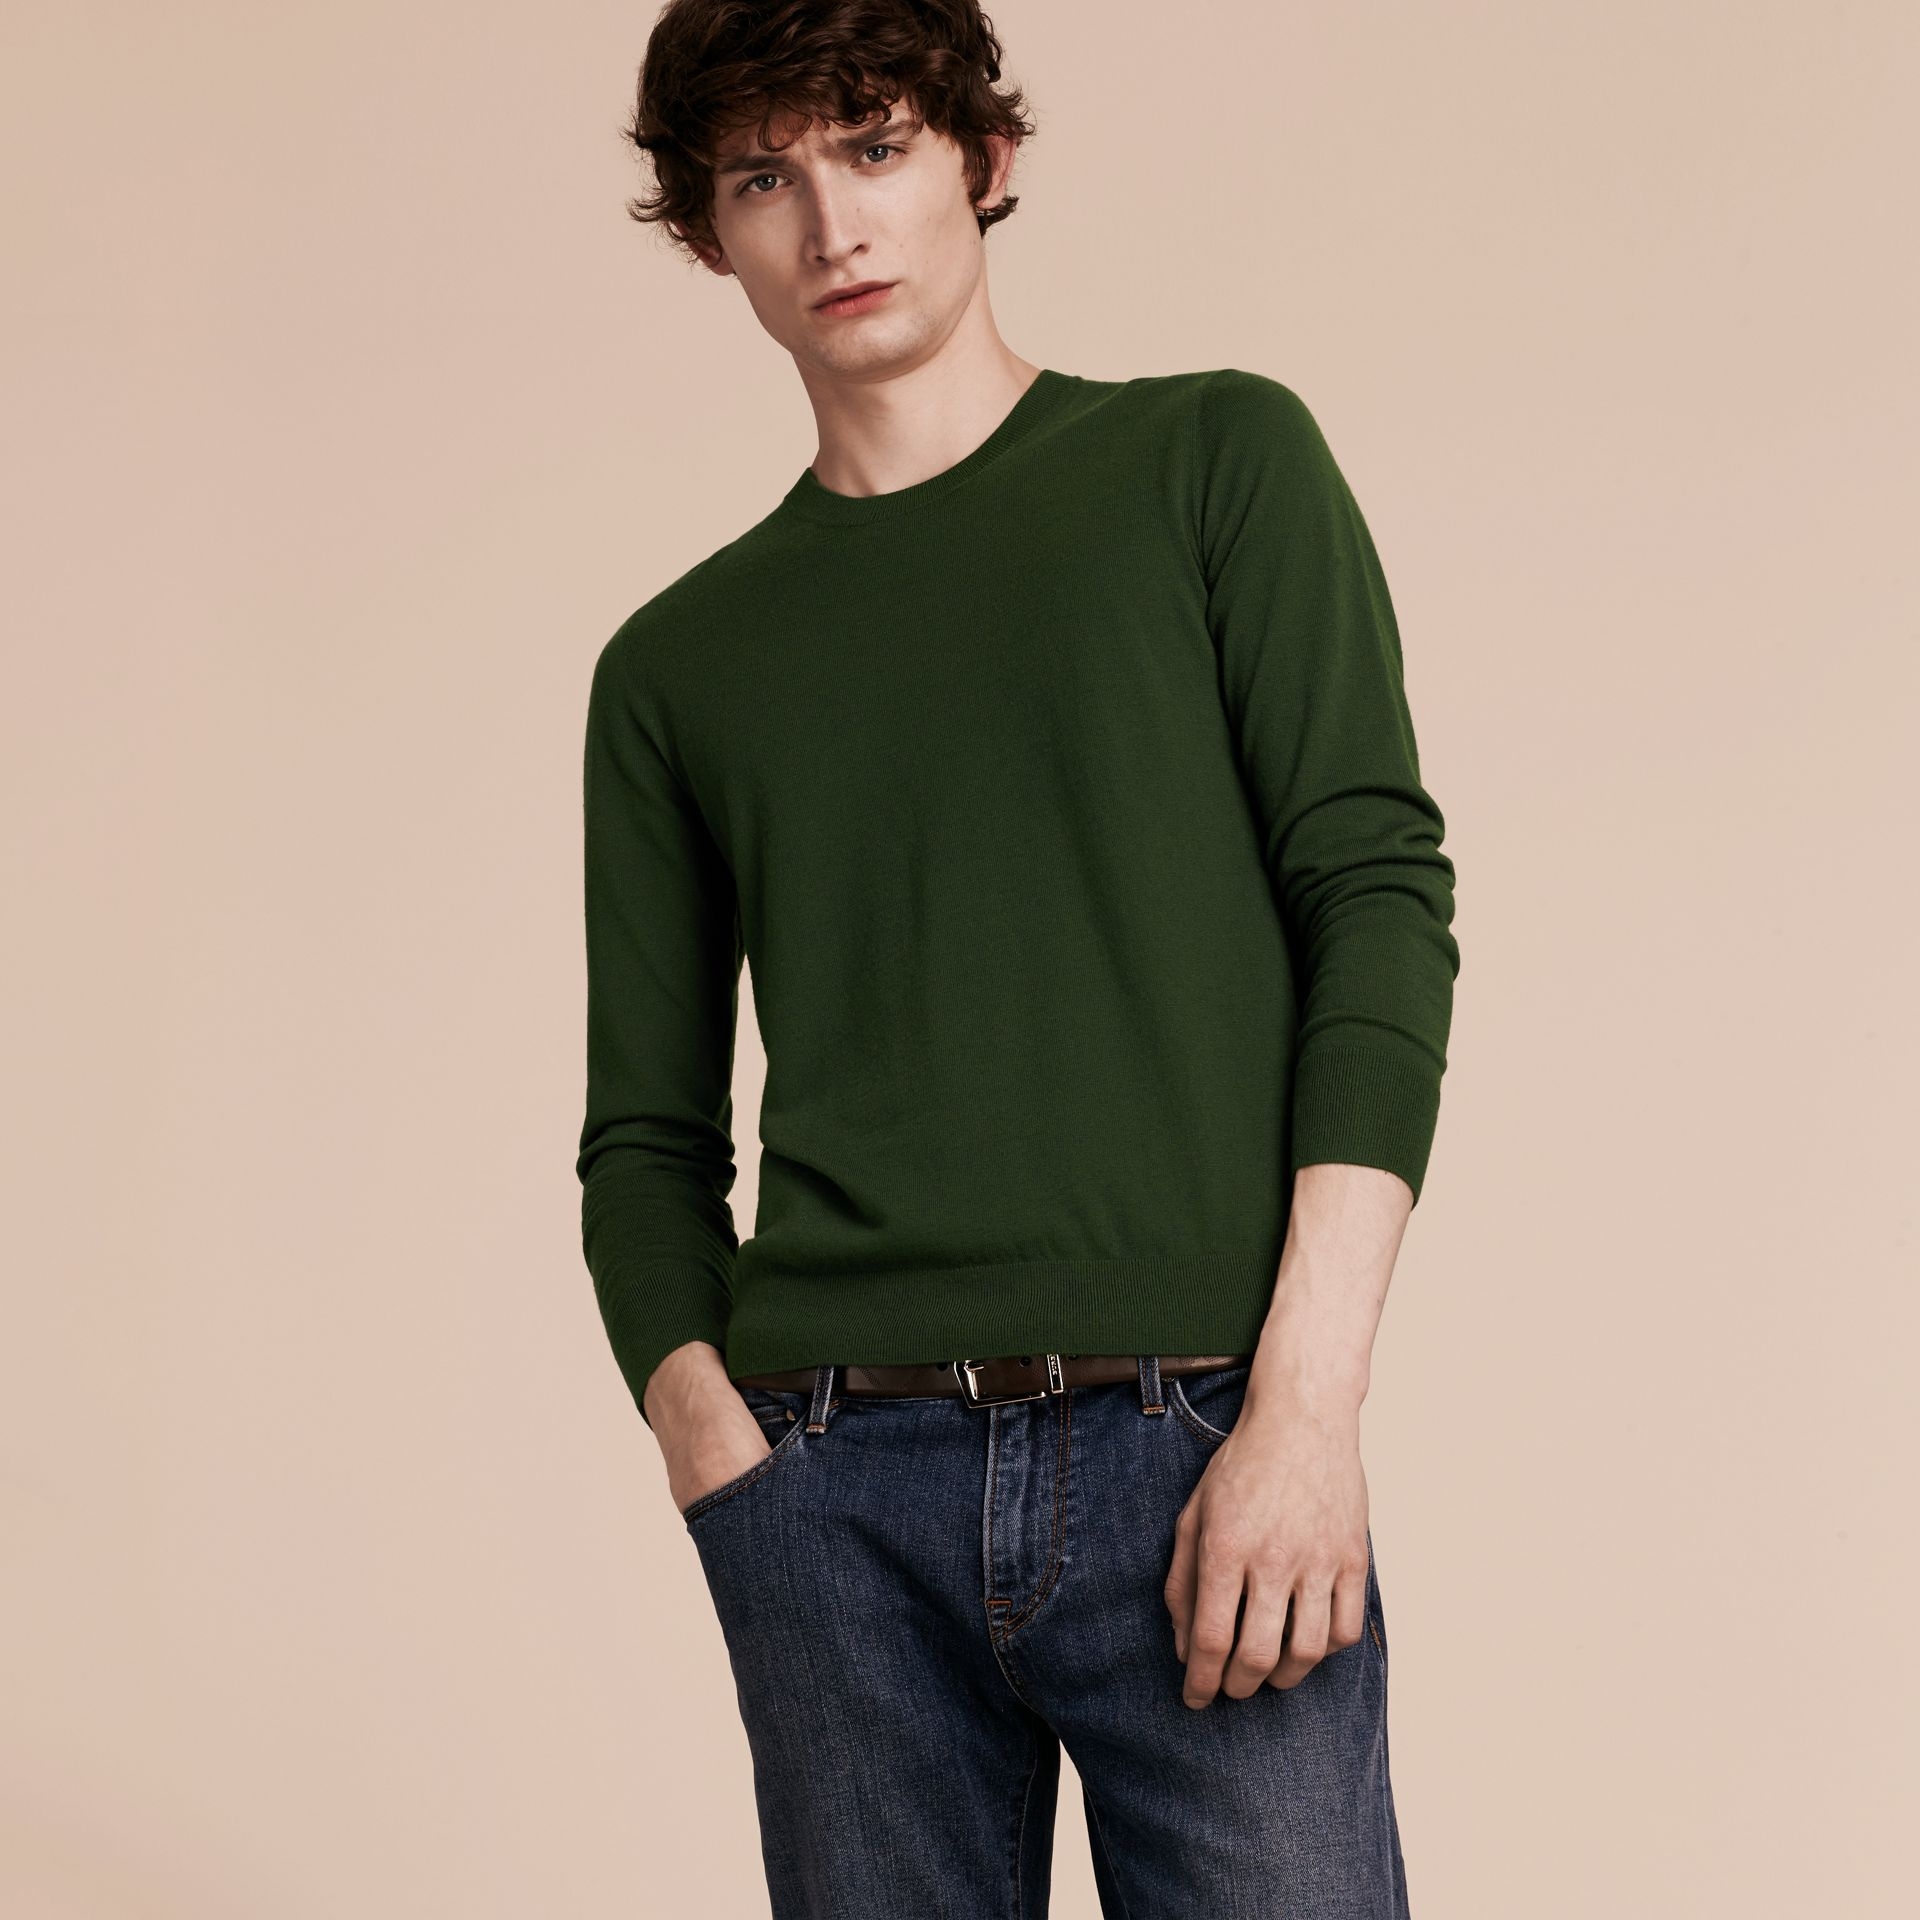 Olive green Lightweight Crew Neck Cashmere Sweater with Check Trim Olive Green - gallery image 6